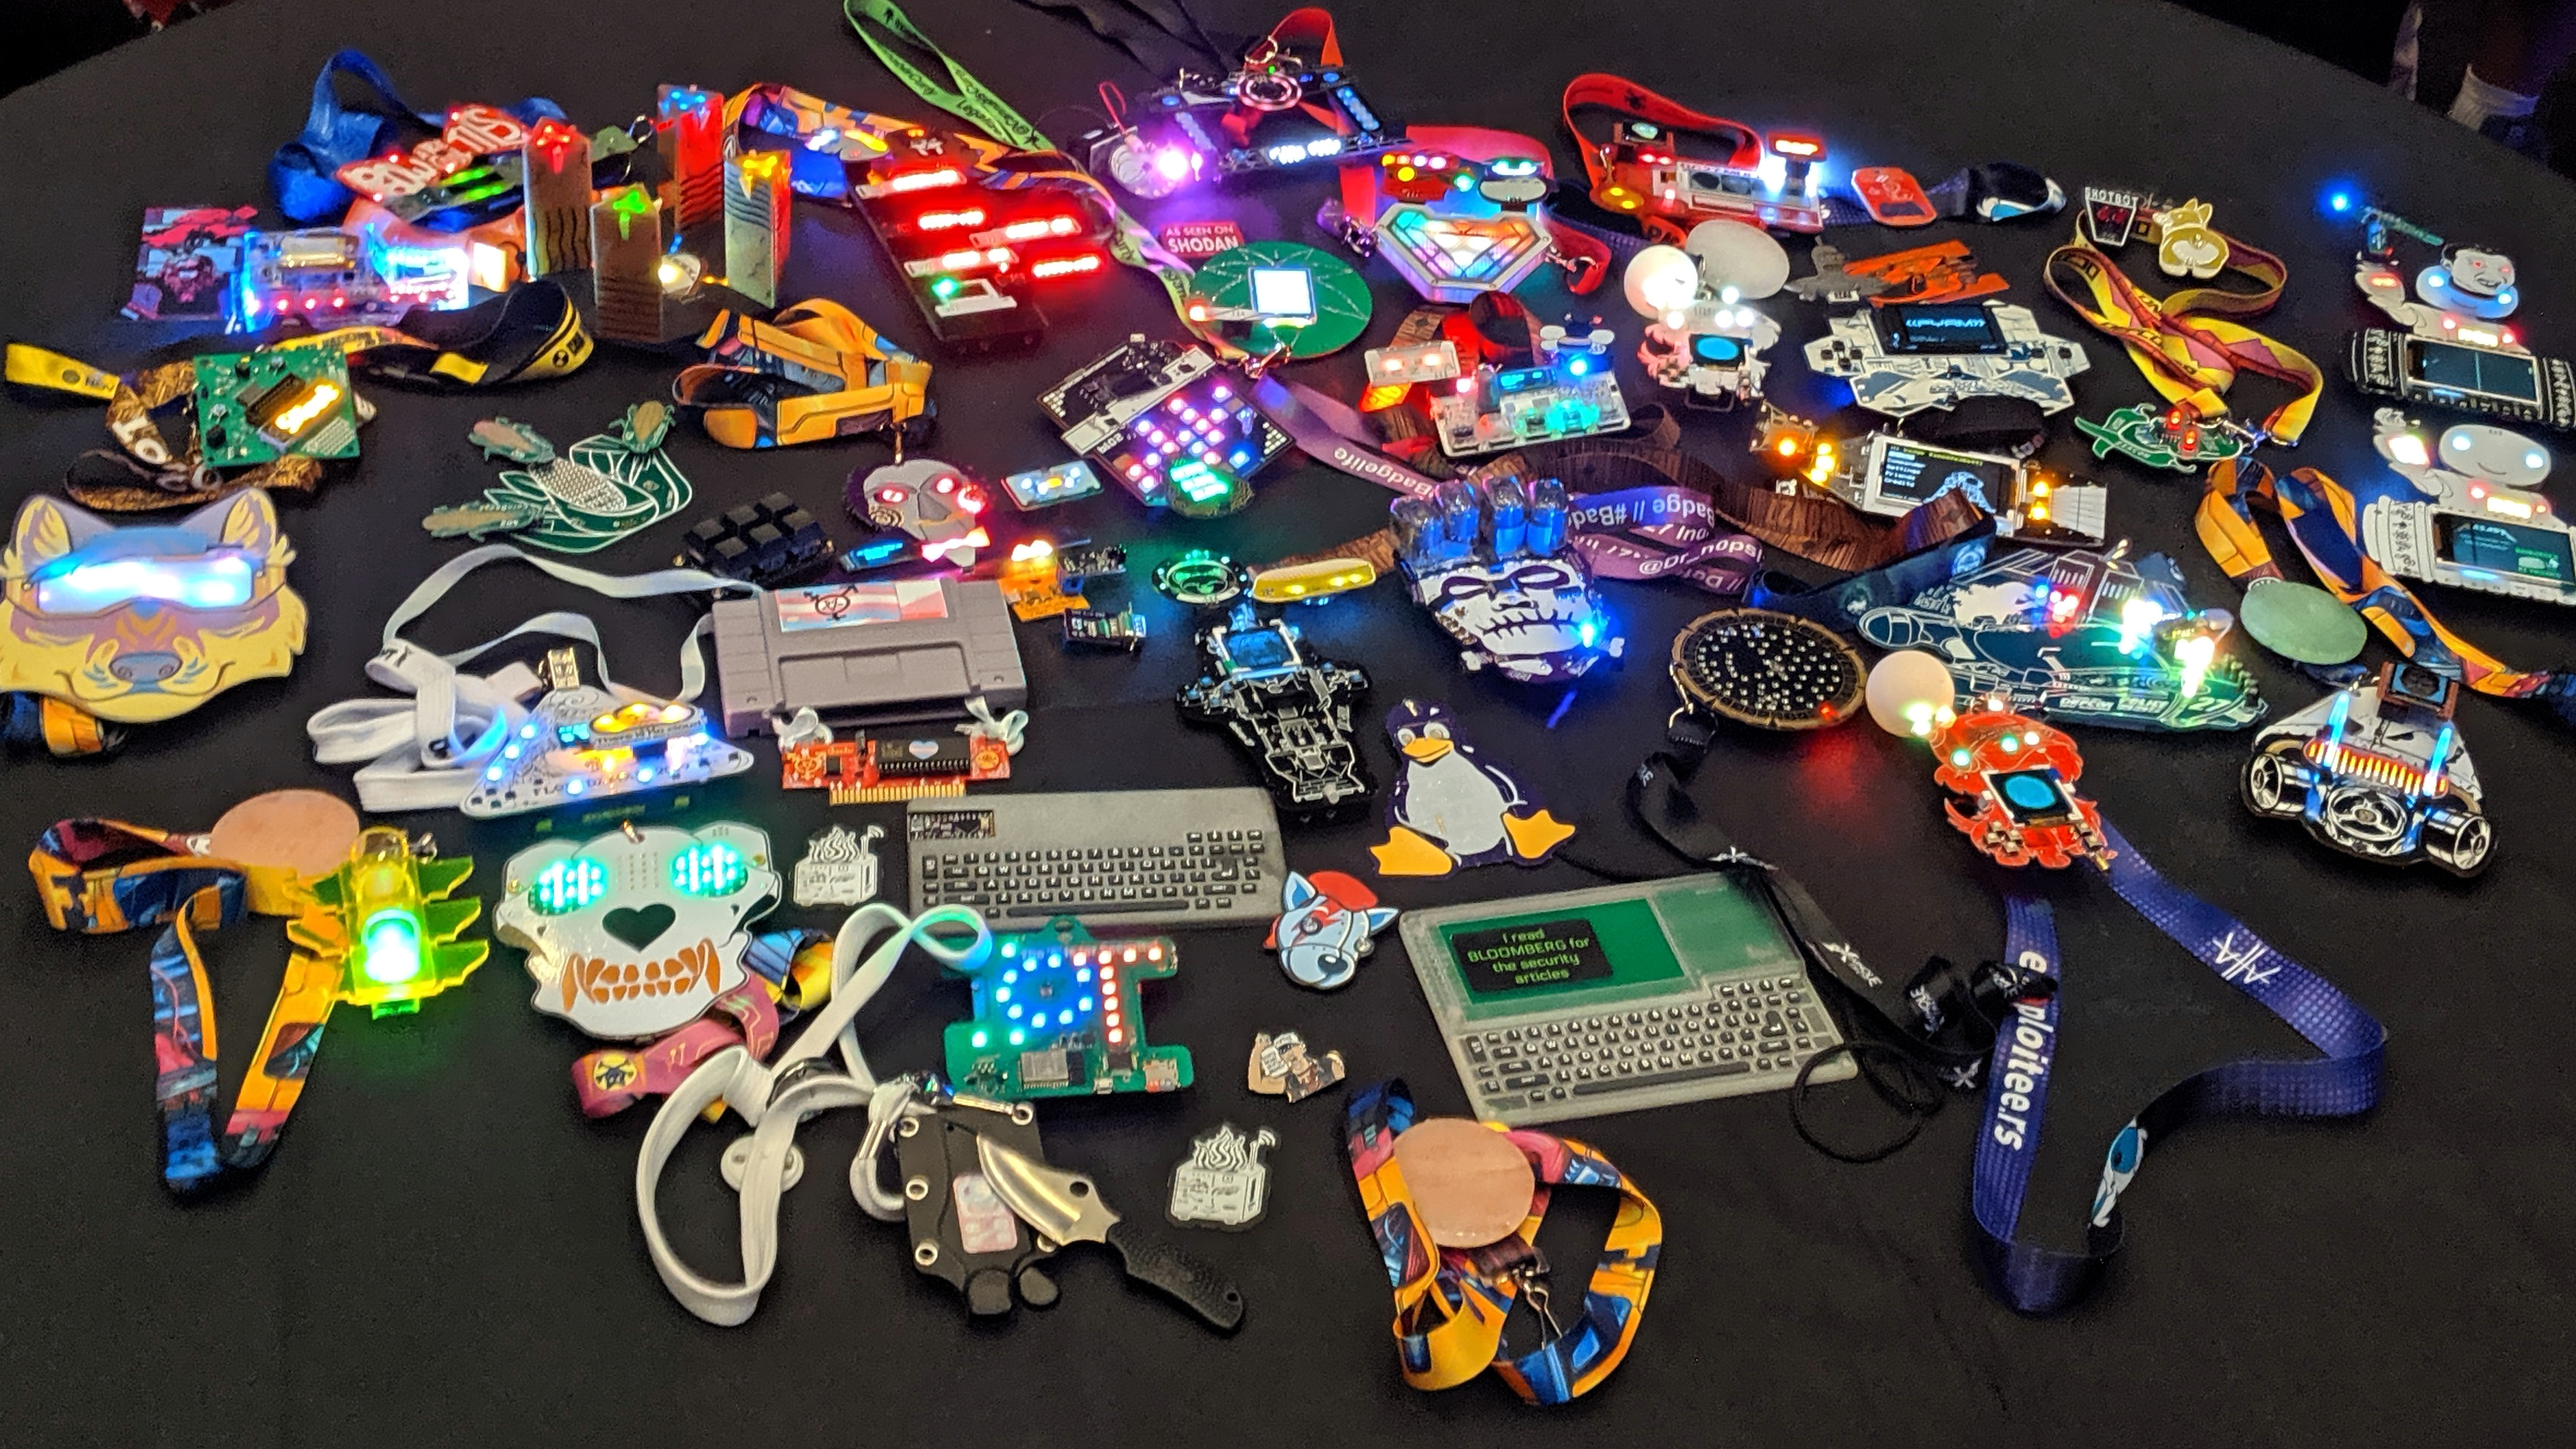 Pictorial Guide to the Unofficial Electronic Badges of DEF CON 27